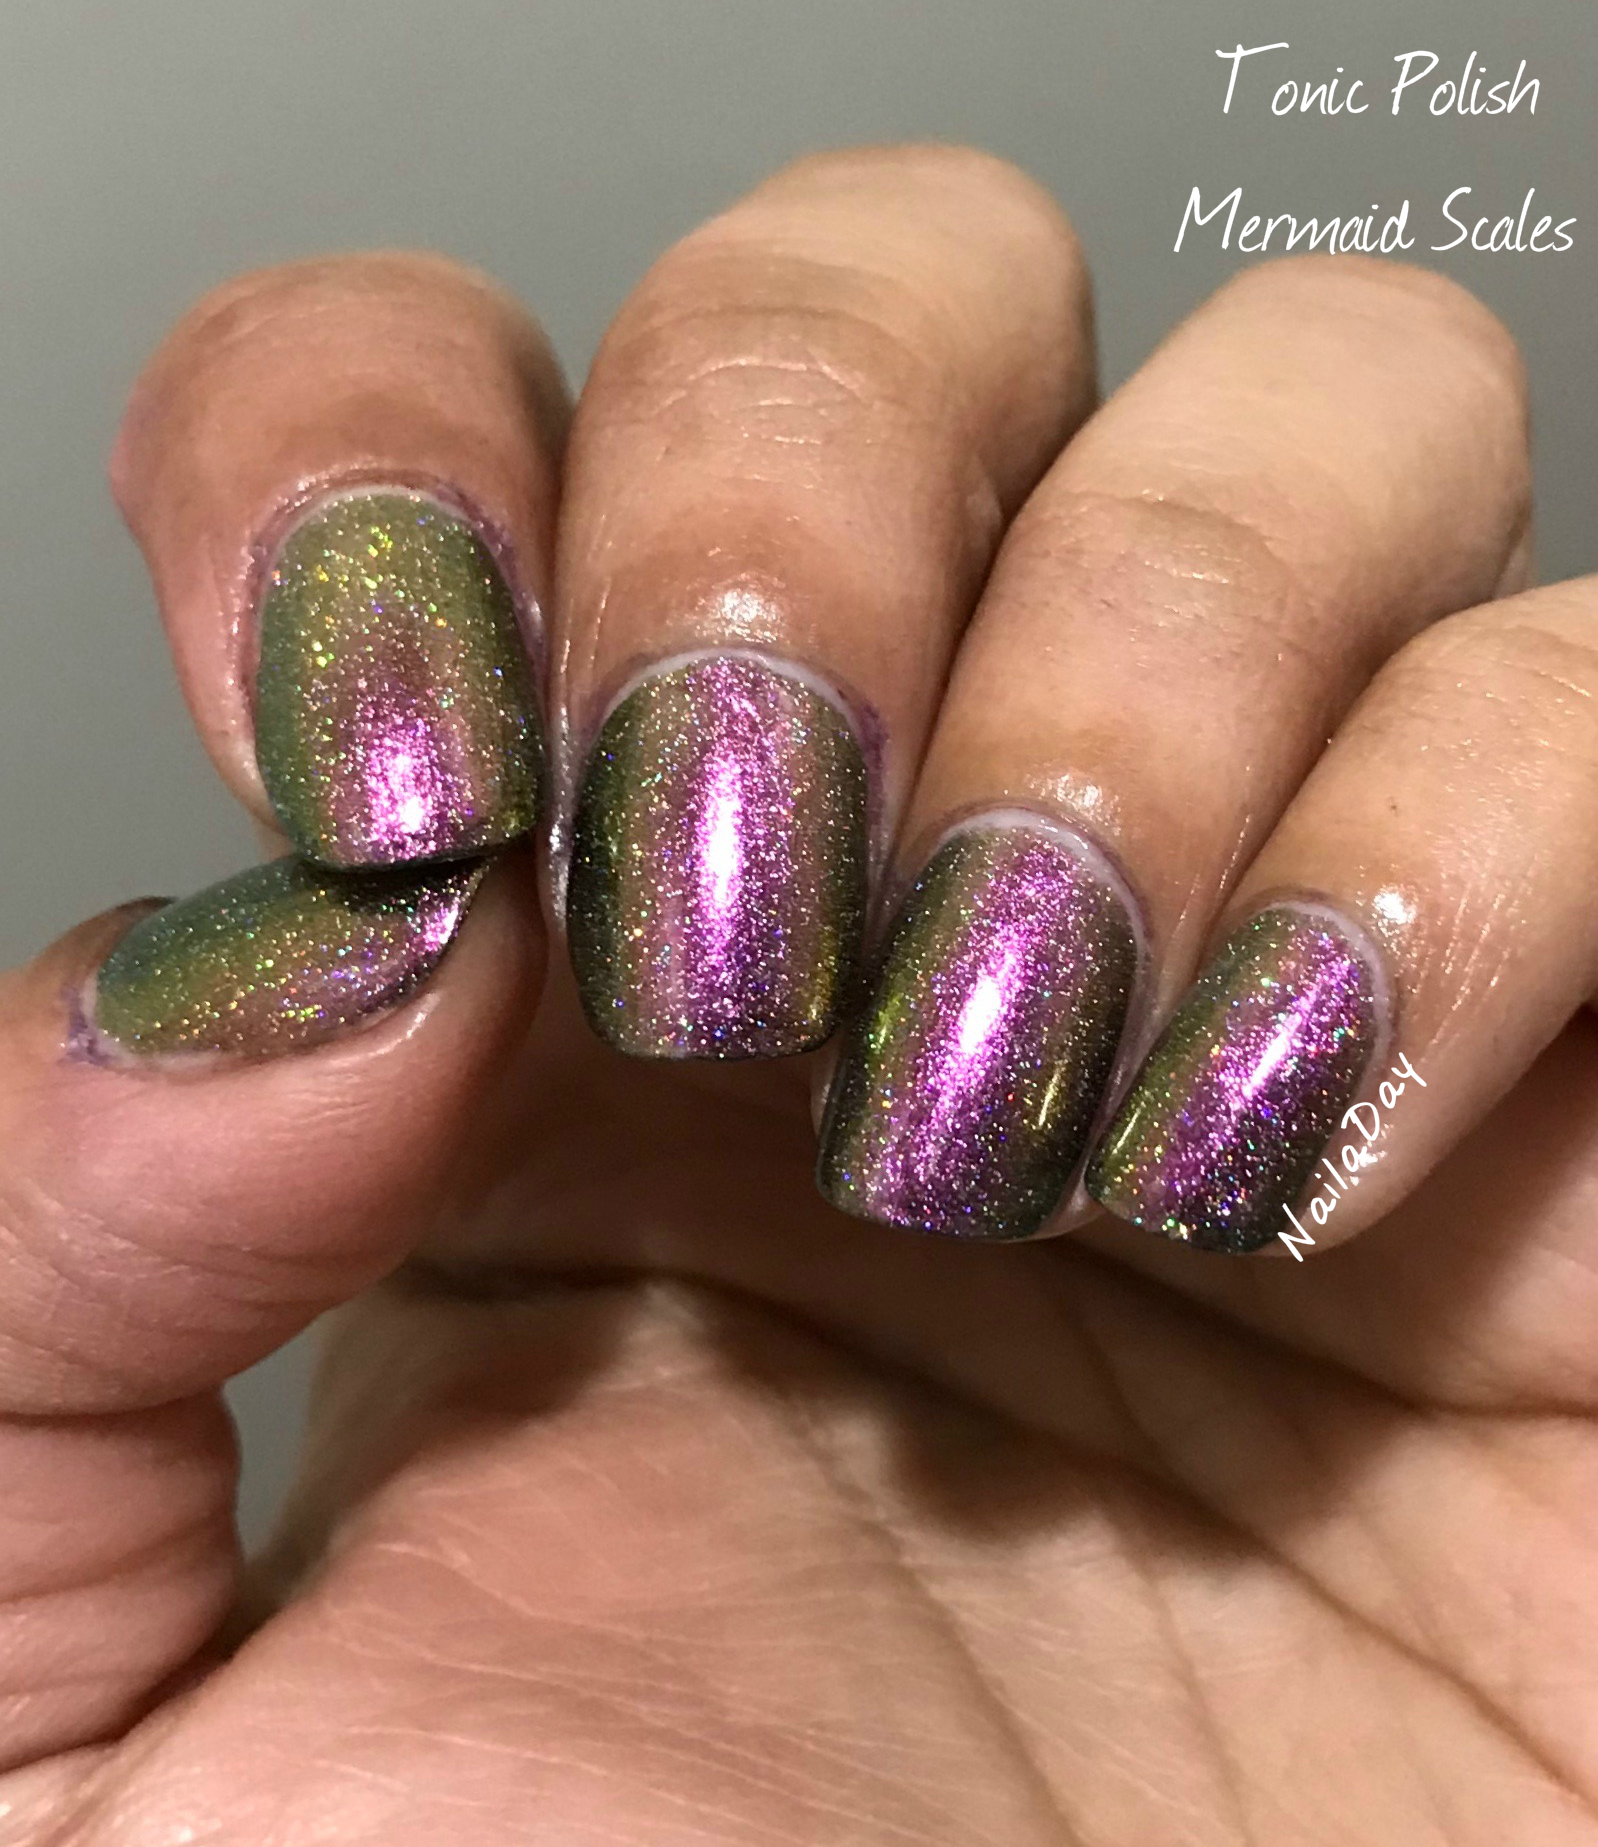 NailaDay: Tonic Polish Mermaid Scales